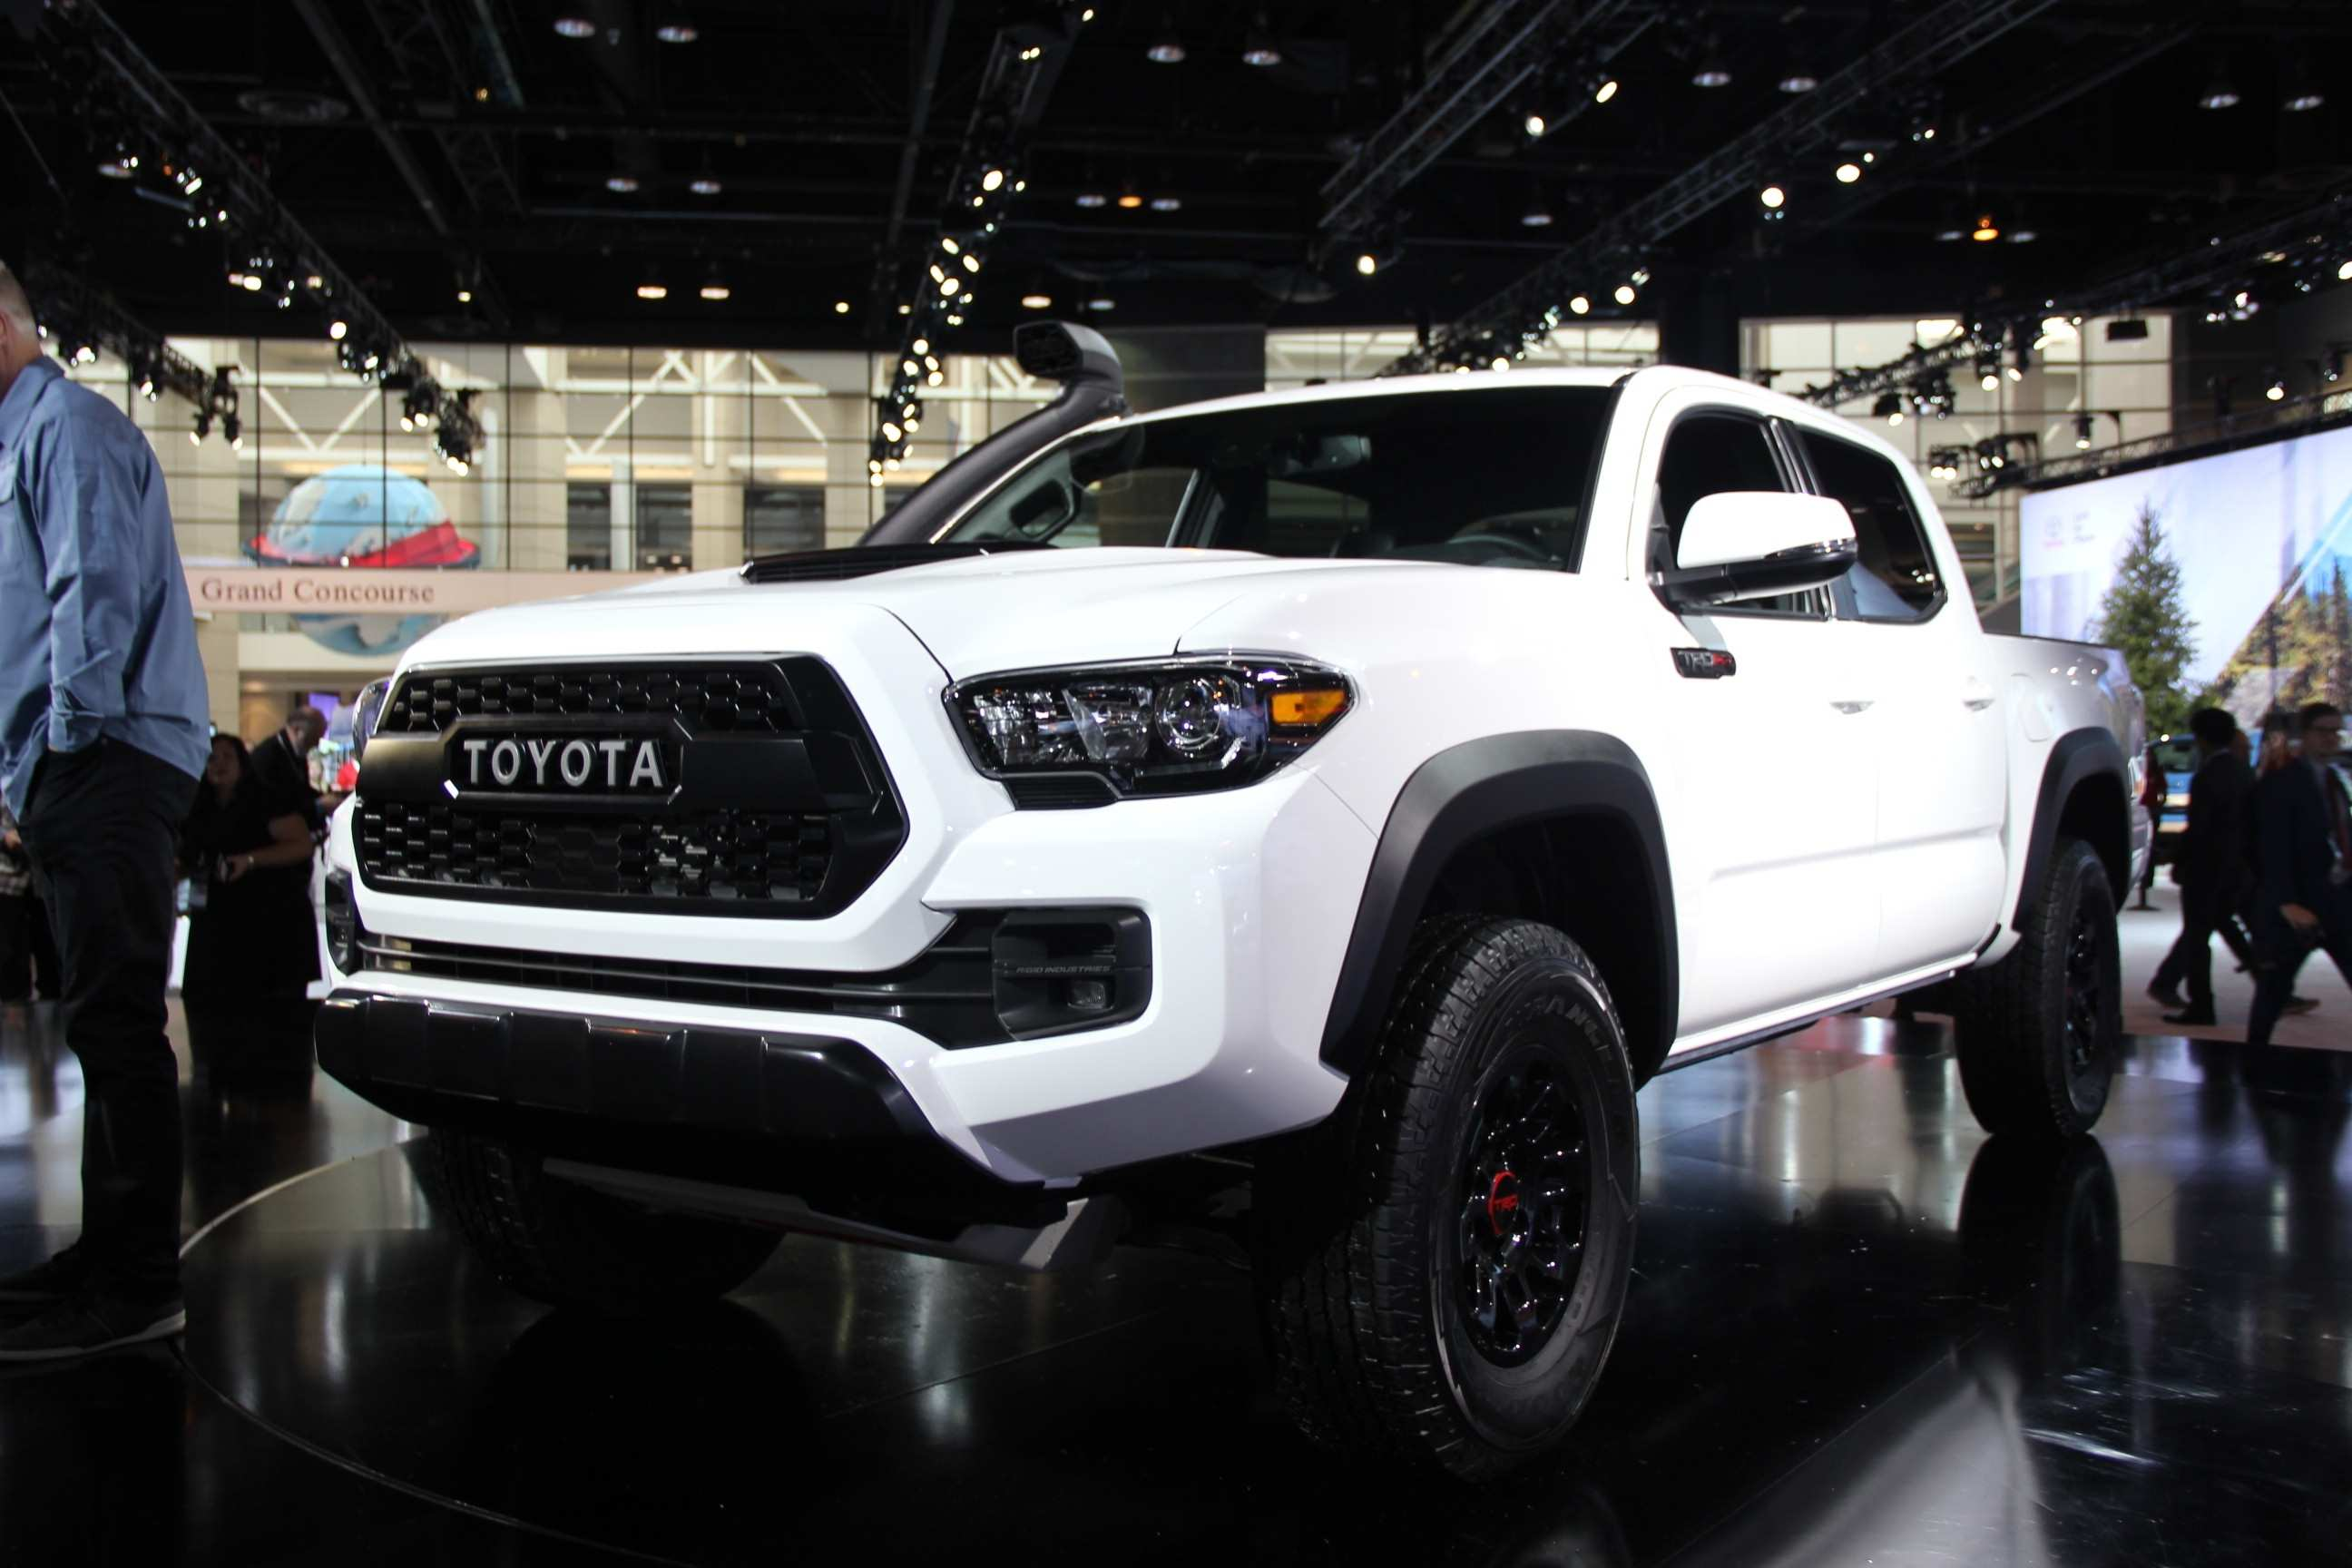 96 Gallery of The Toyota 2019 V6 Release Date New Review with The Toyota 2019 V6 Release Date